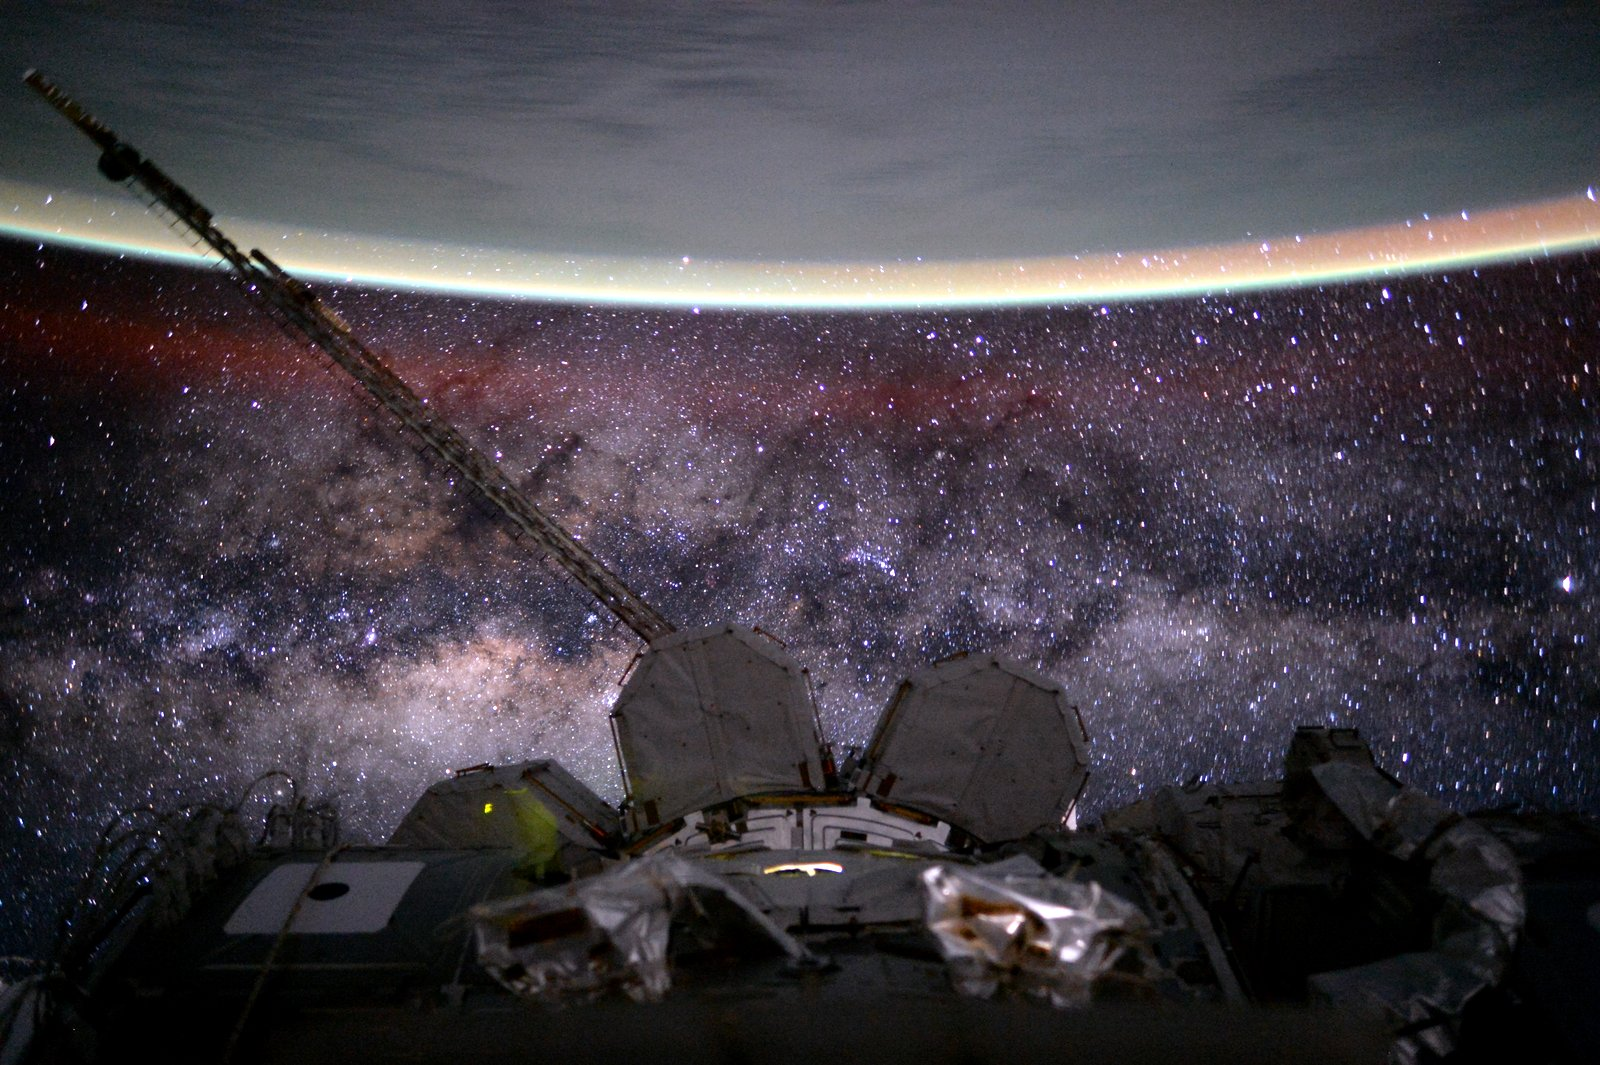 The central band of the Milky Way as seen from the ISS. Earth is visible on top. Credit: Scott Kelly/NASA